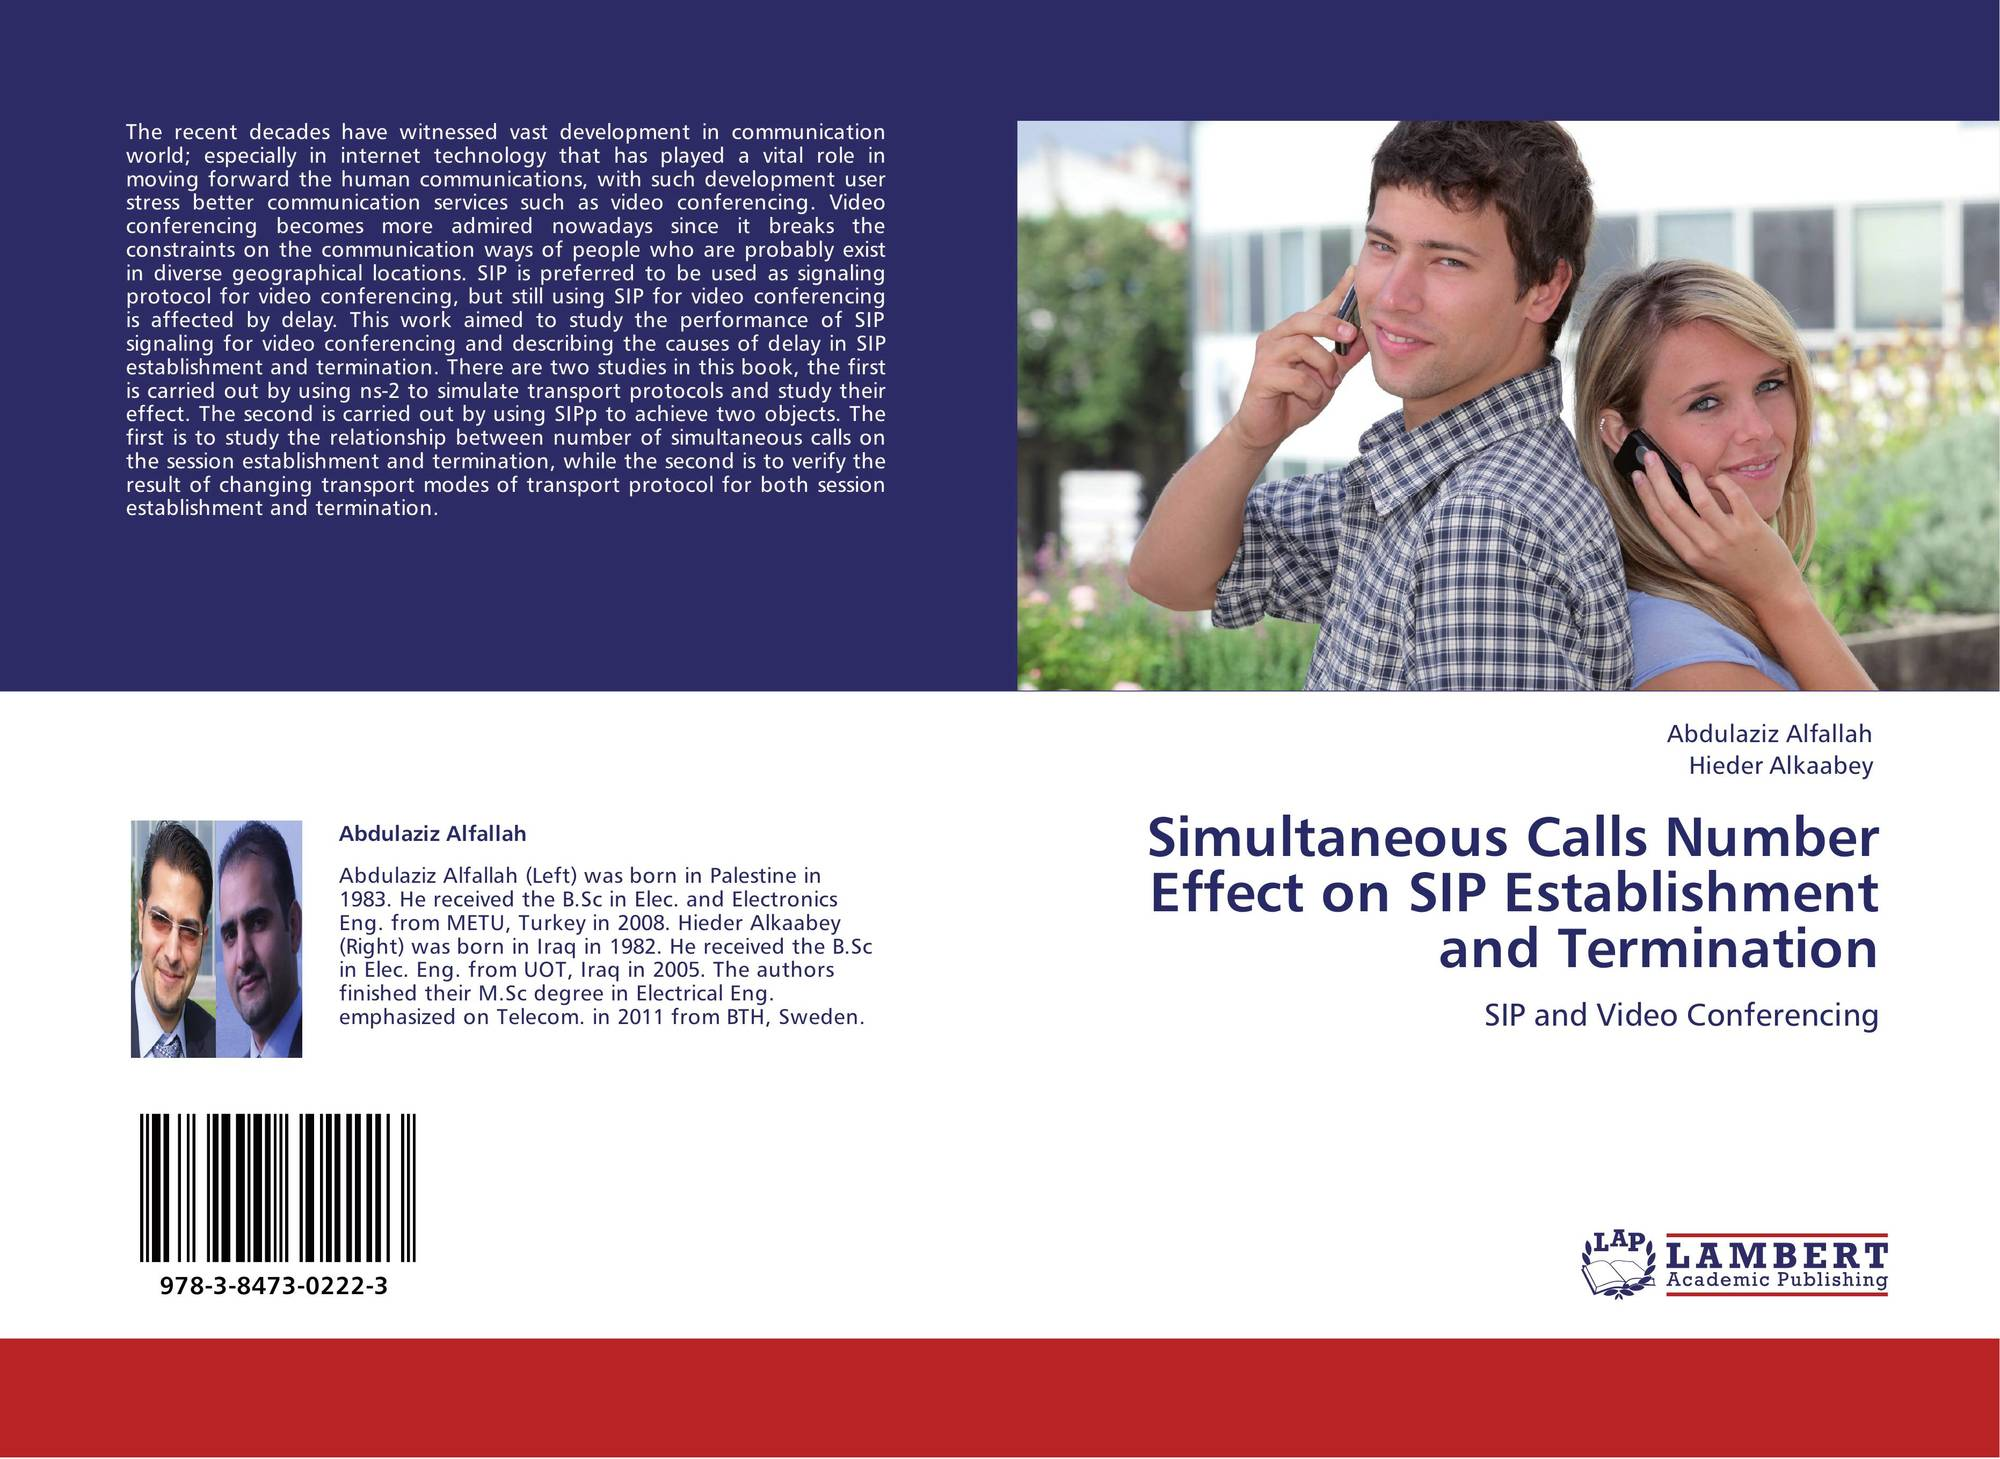 Simultaneous Calls Number Effect on SIP Establishment and